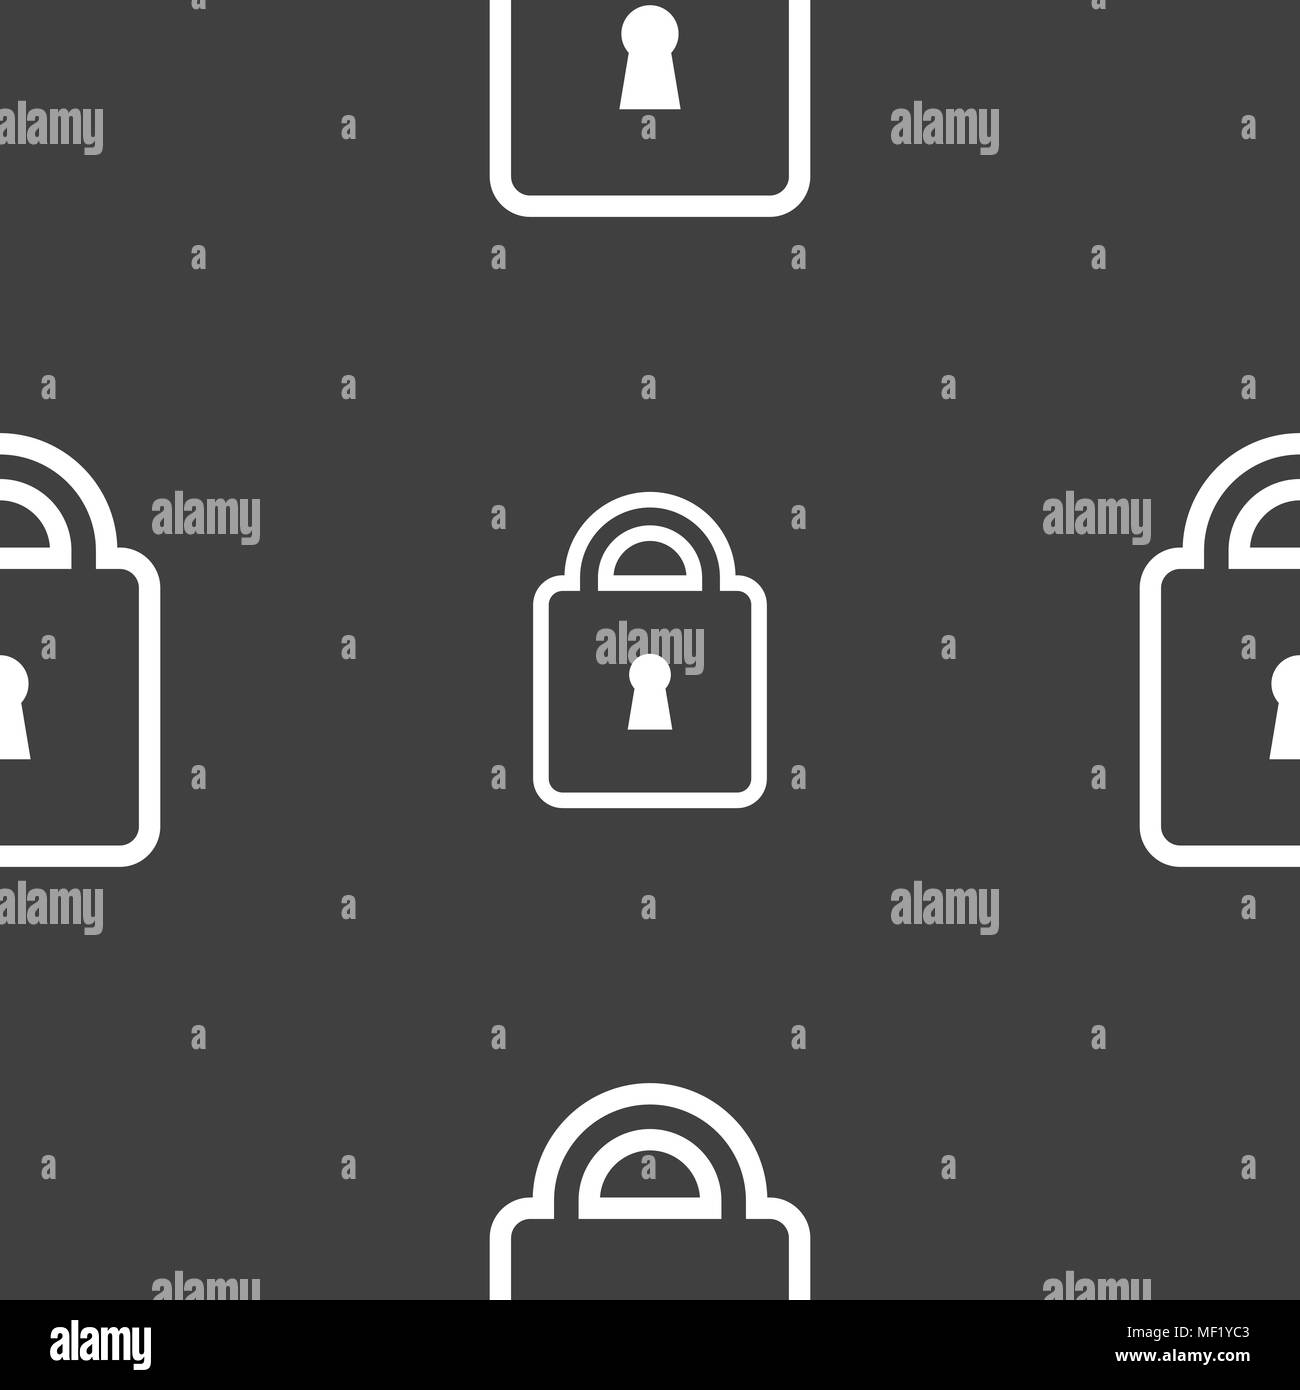 Lock icon sign. Seamless pattern on a gray background. Vector illustration - Stock Image